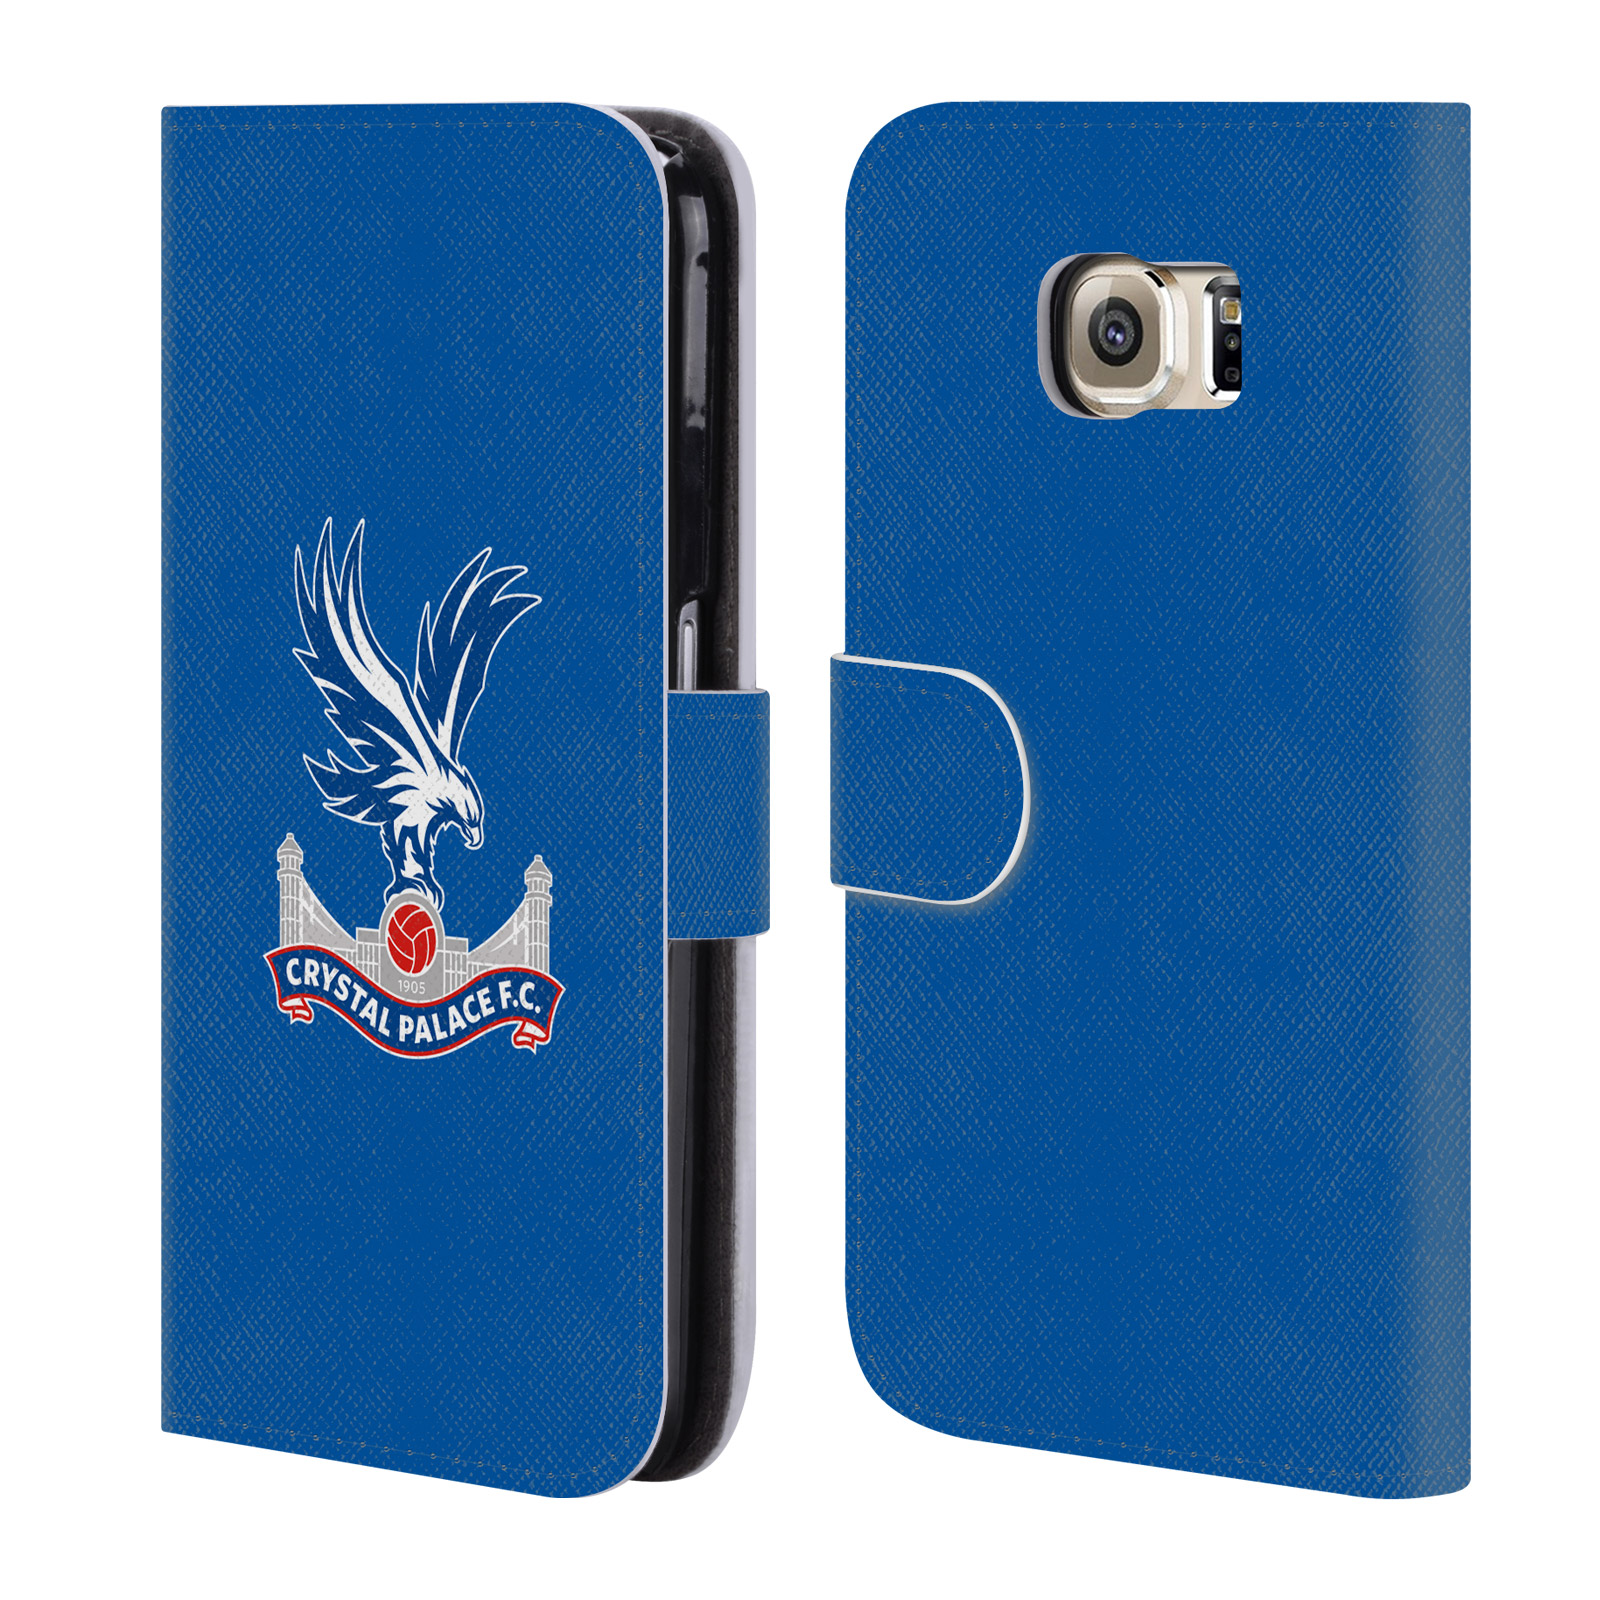 CRYSTAL-PALACE-FC-THE-EAGLES-ETUI-COQUE-EN-CUIR-POUR-SAMSUNG-TELEPHONES-1